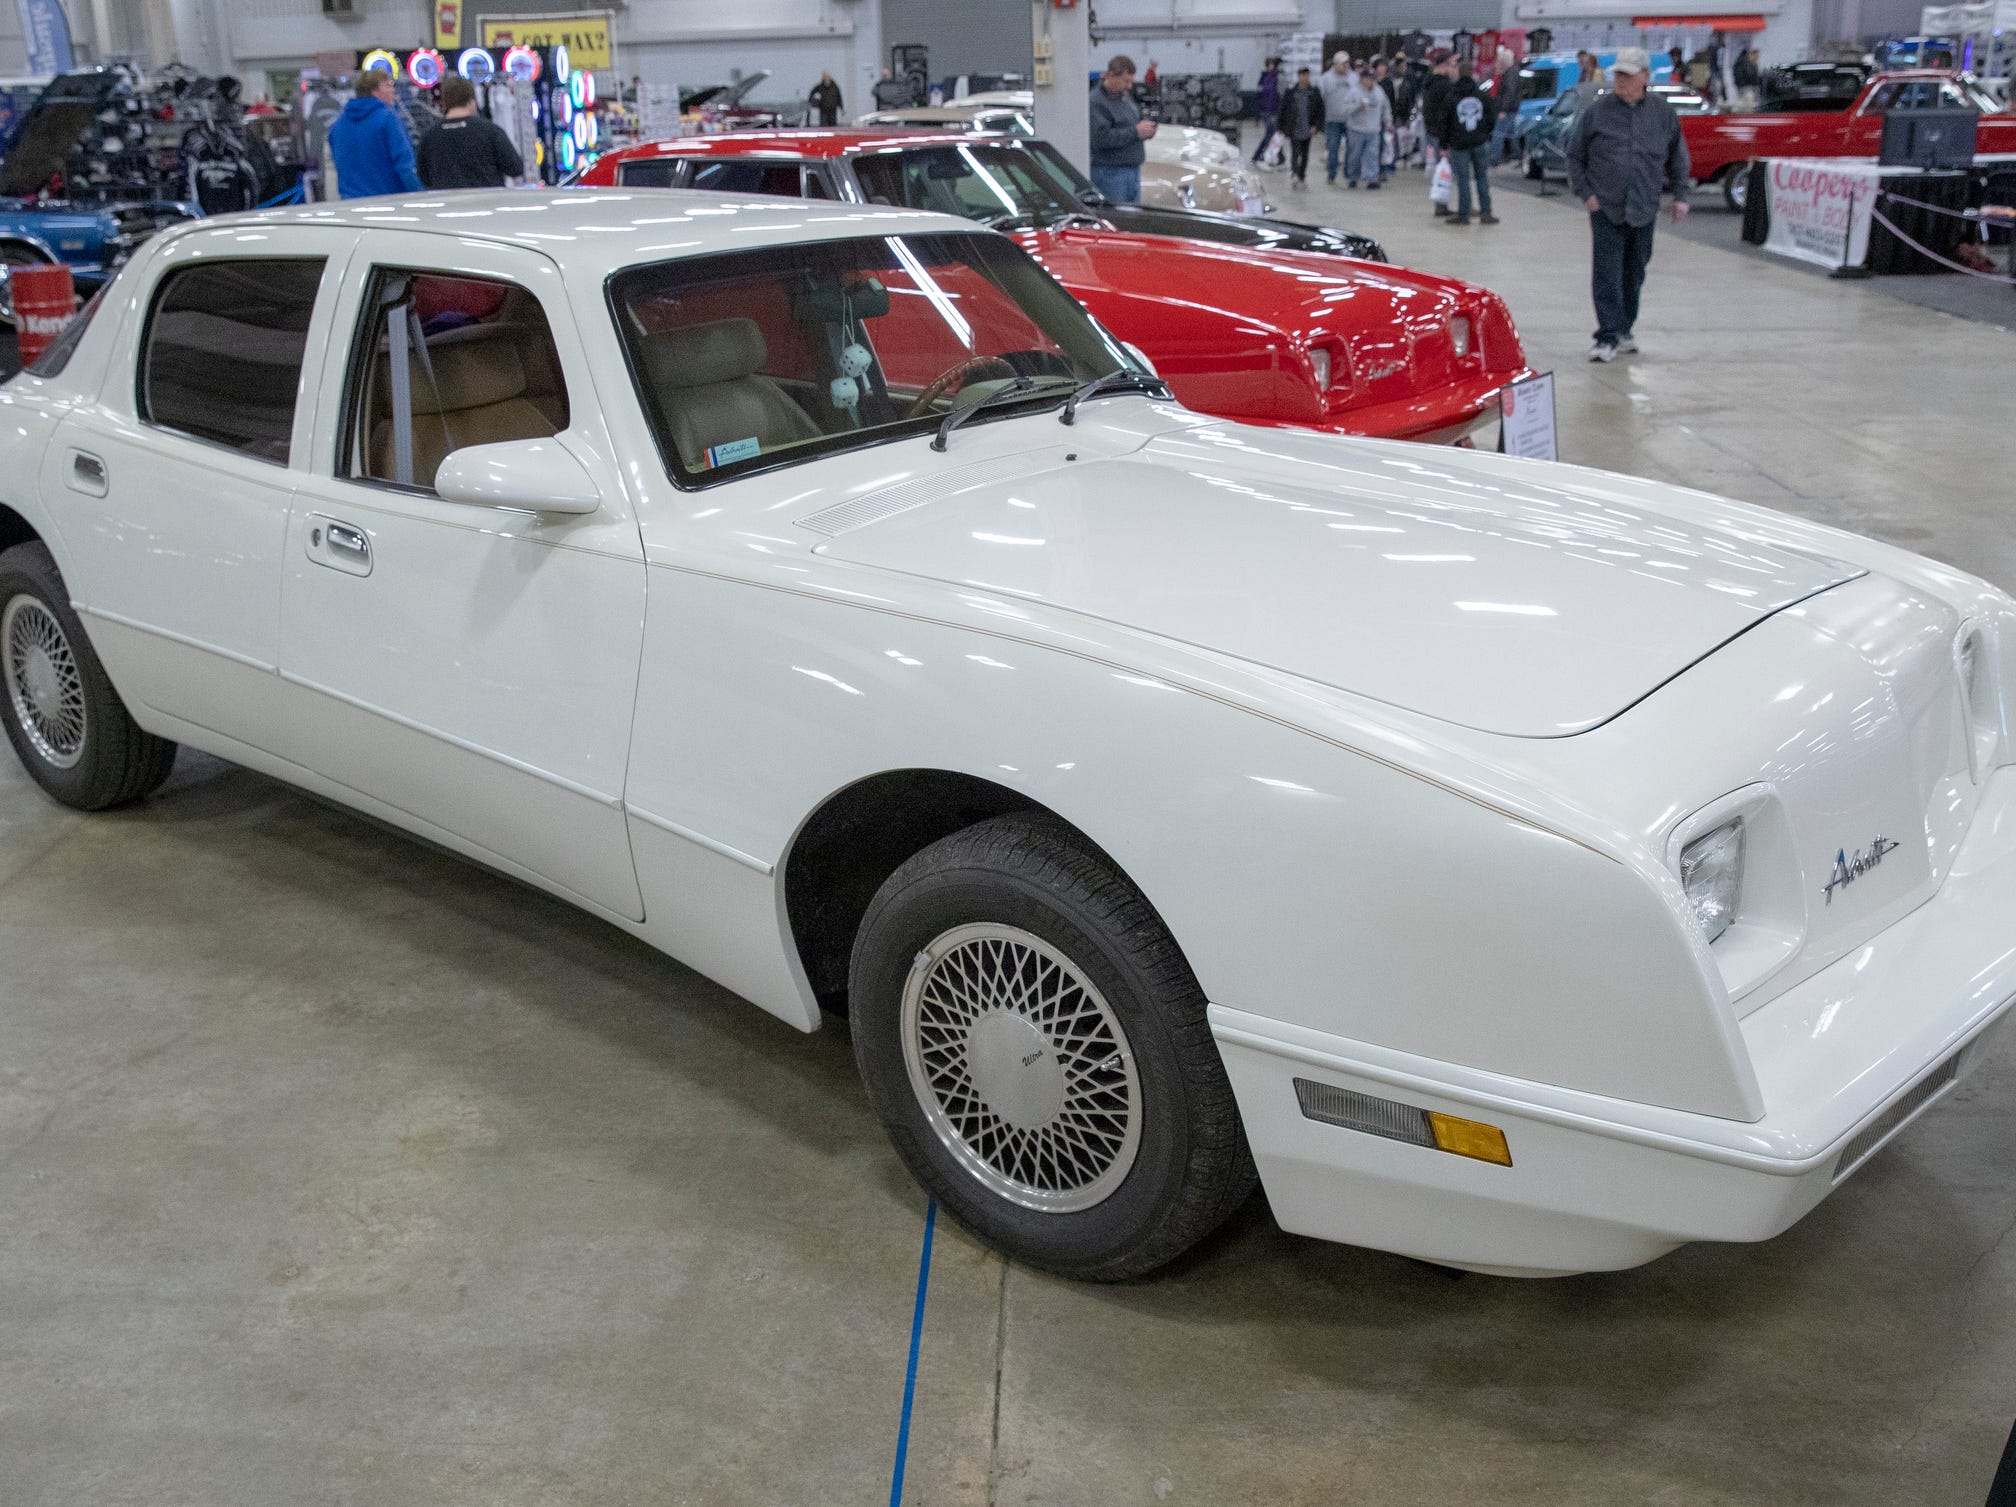 A 1990 Avanti Sports Sedan, at World of Wheels at the Indiana State Fairgrounds, Indianapolis, Friday, Feb. 8, 2019. The event runs through the weekend and features four big rooms of stock and heavily customized cars.